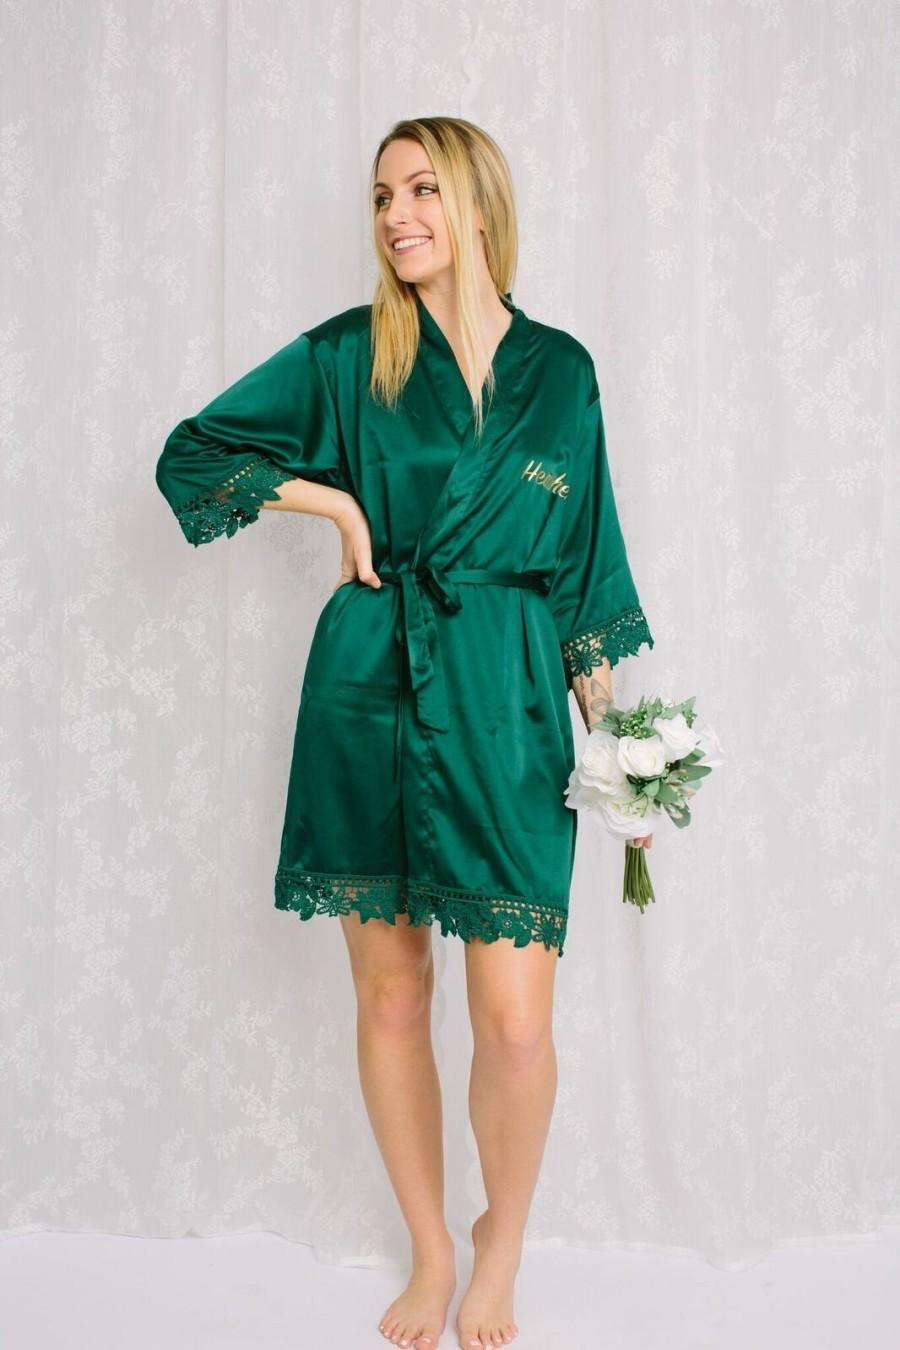 Hochzeit - Green Bridesmaid Robes, Bridesmaid gifts, Satin Lace Robes, Bridal Robes, Robe for Bride, Getting Ready Robe, Bridal Party Robe